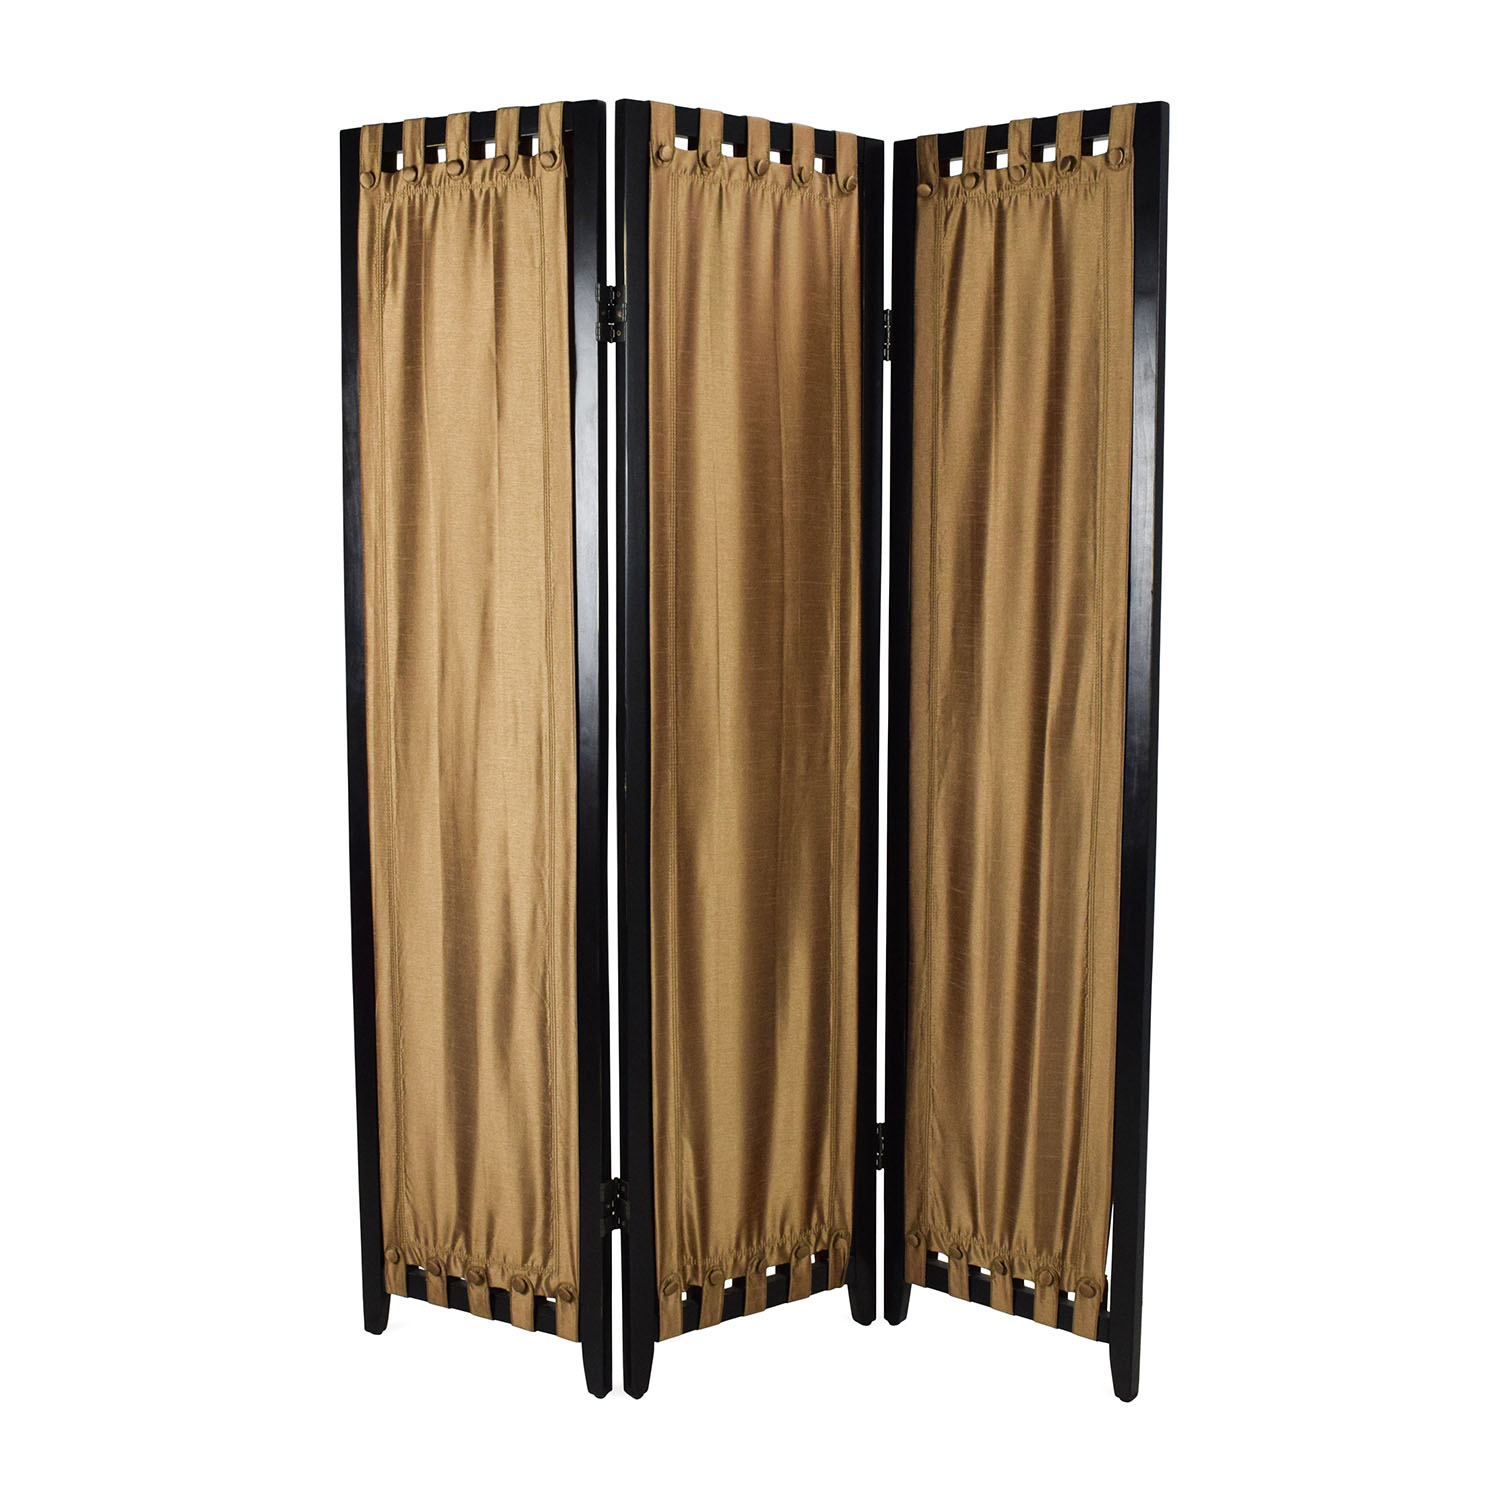 Pier 1 Tabique Gold Room Divider / Dividers